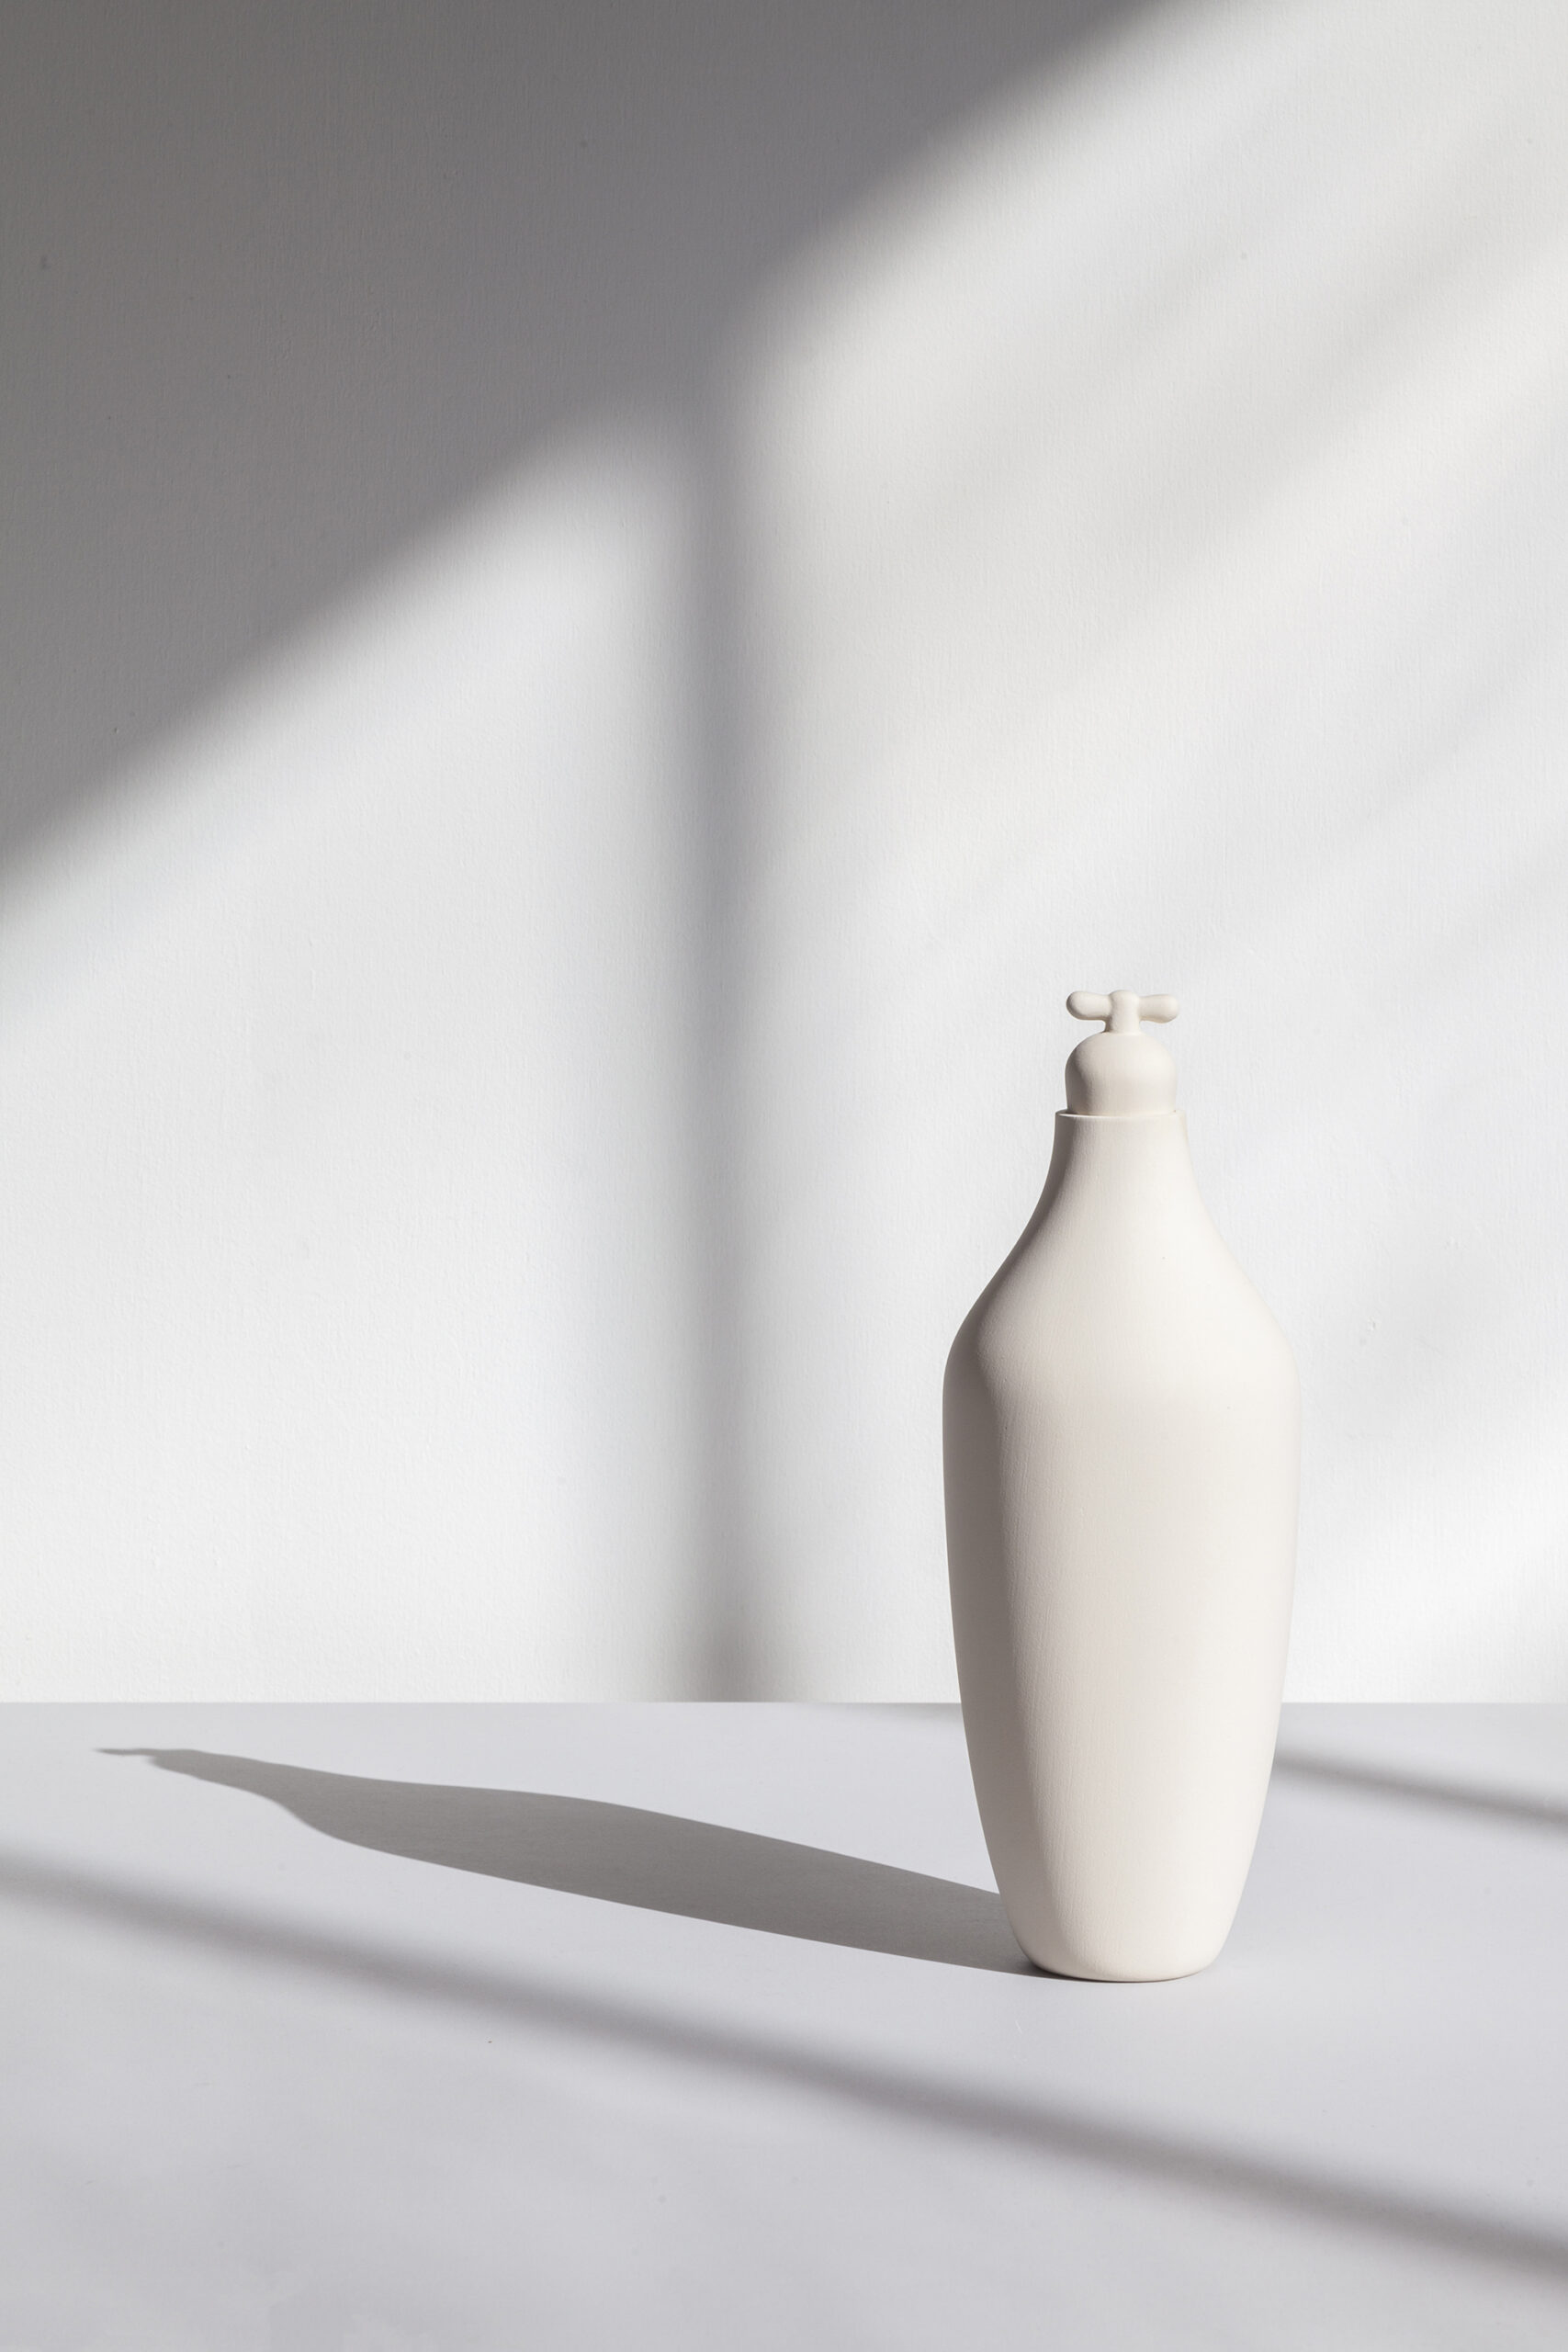 Tap Water Carafe by Lotte de Raadt (setting, image by Vij5) white 02